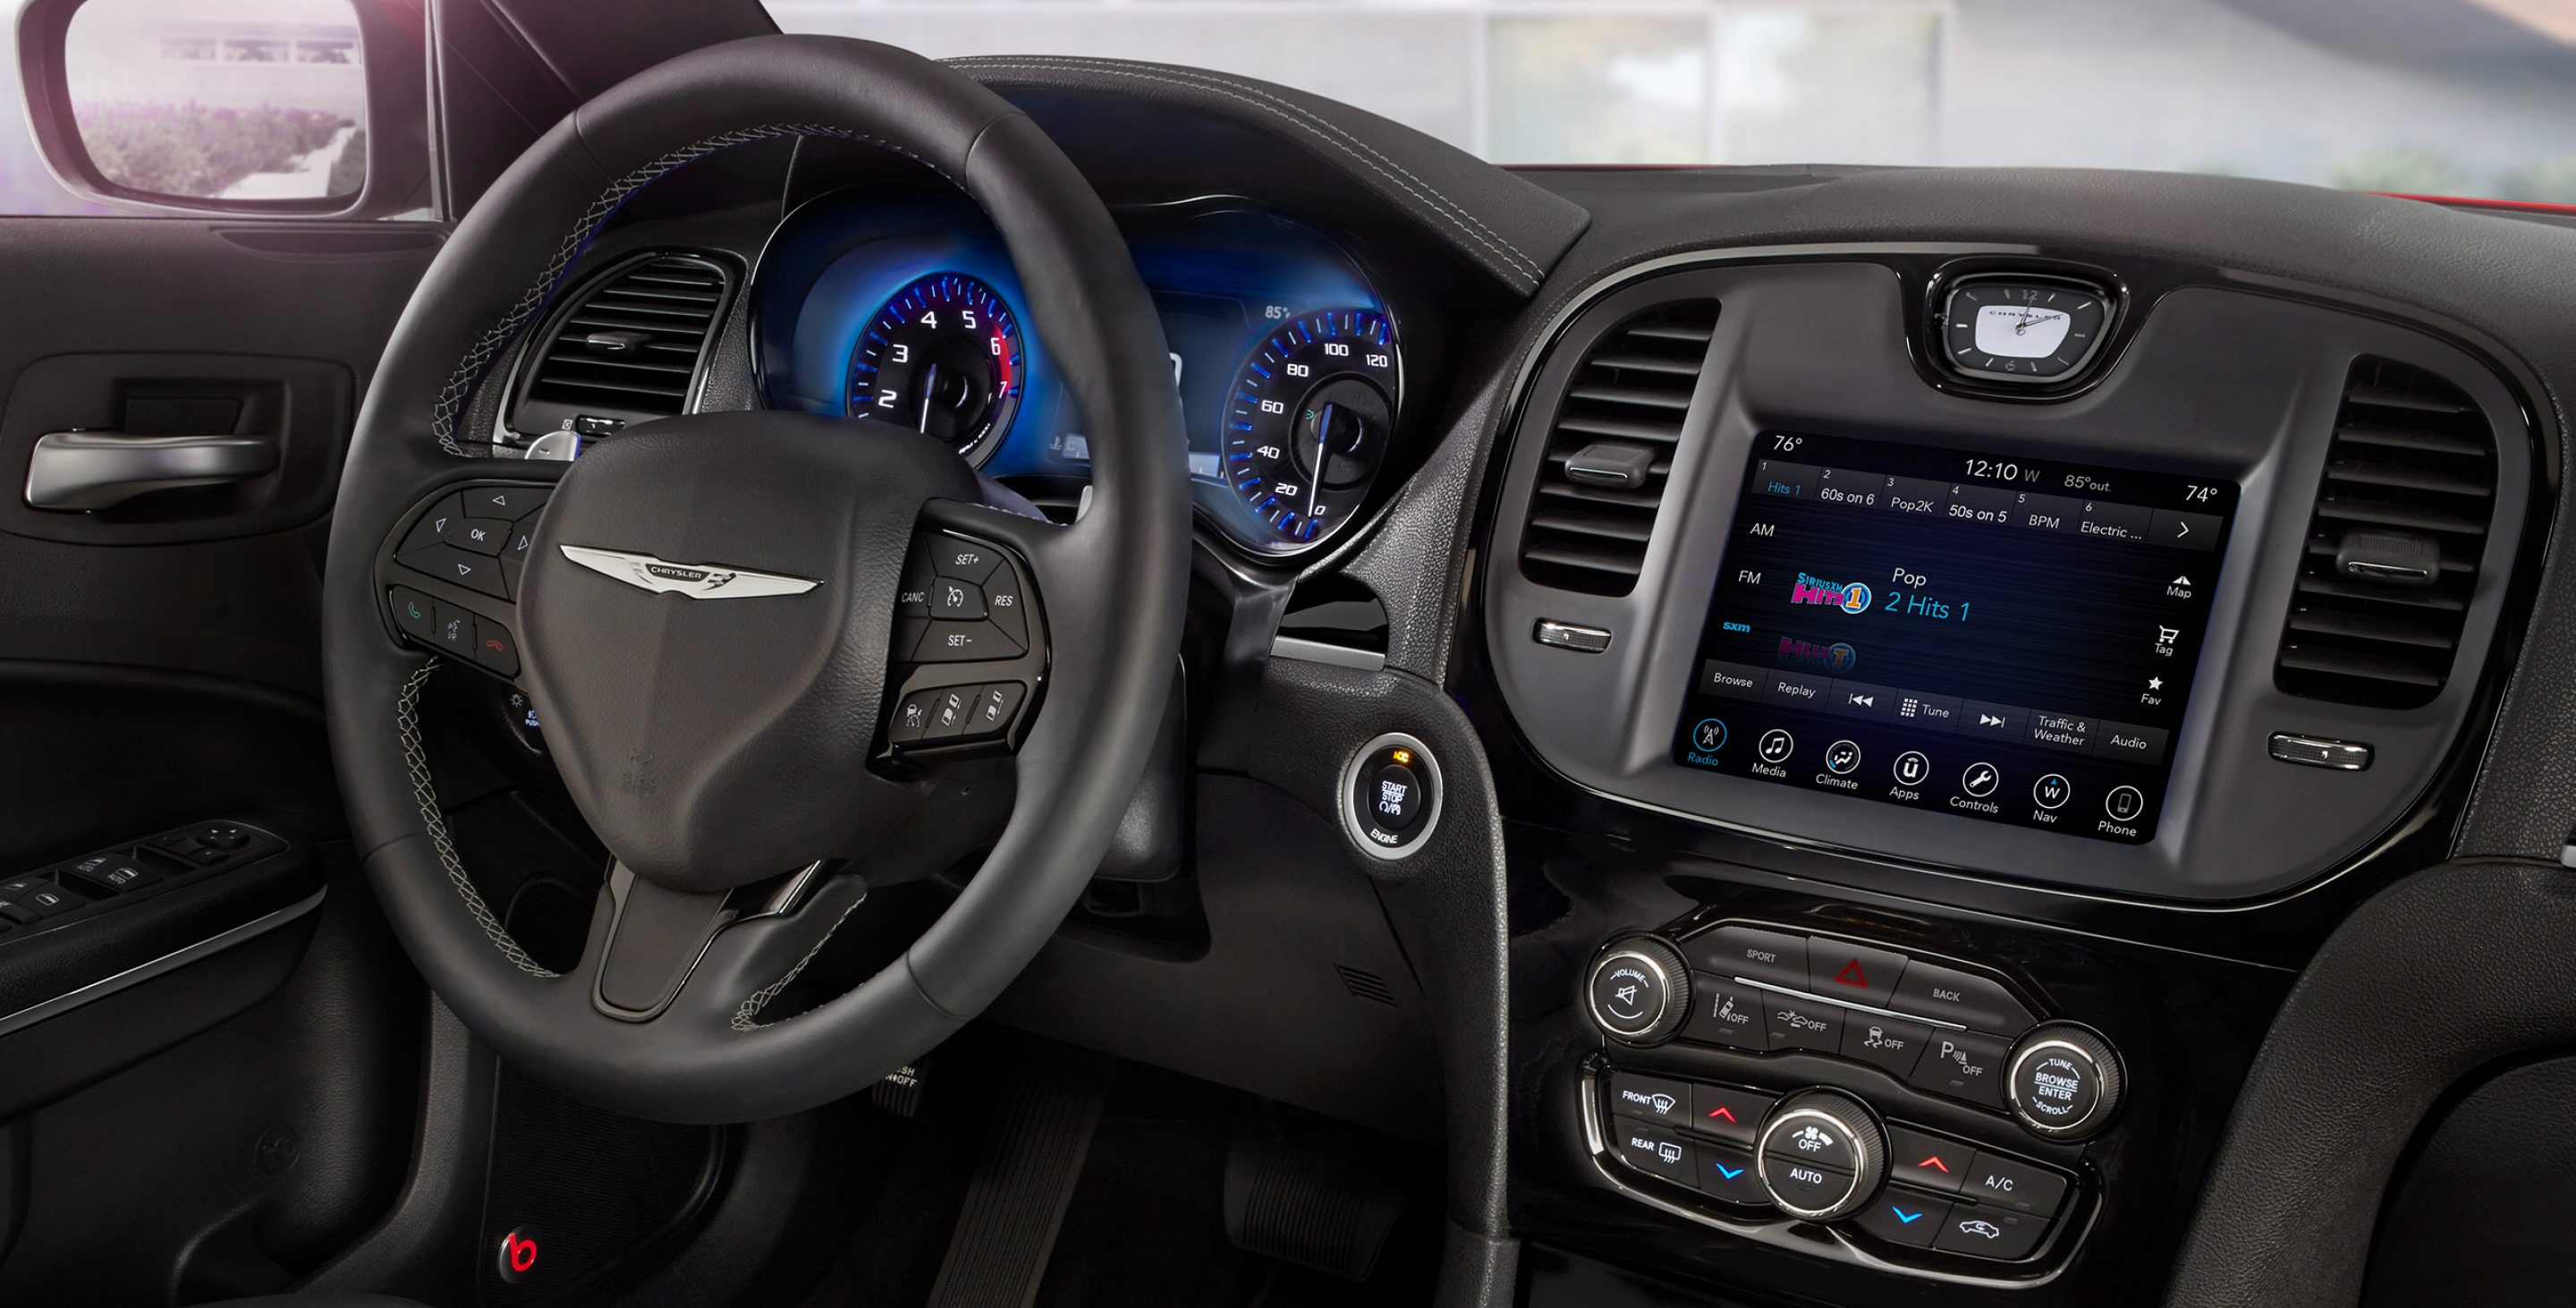 2018-chrysler-300-gallery-interior-1.jpg.image.2880